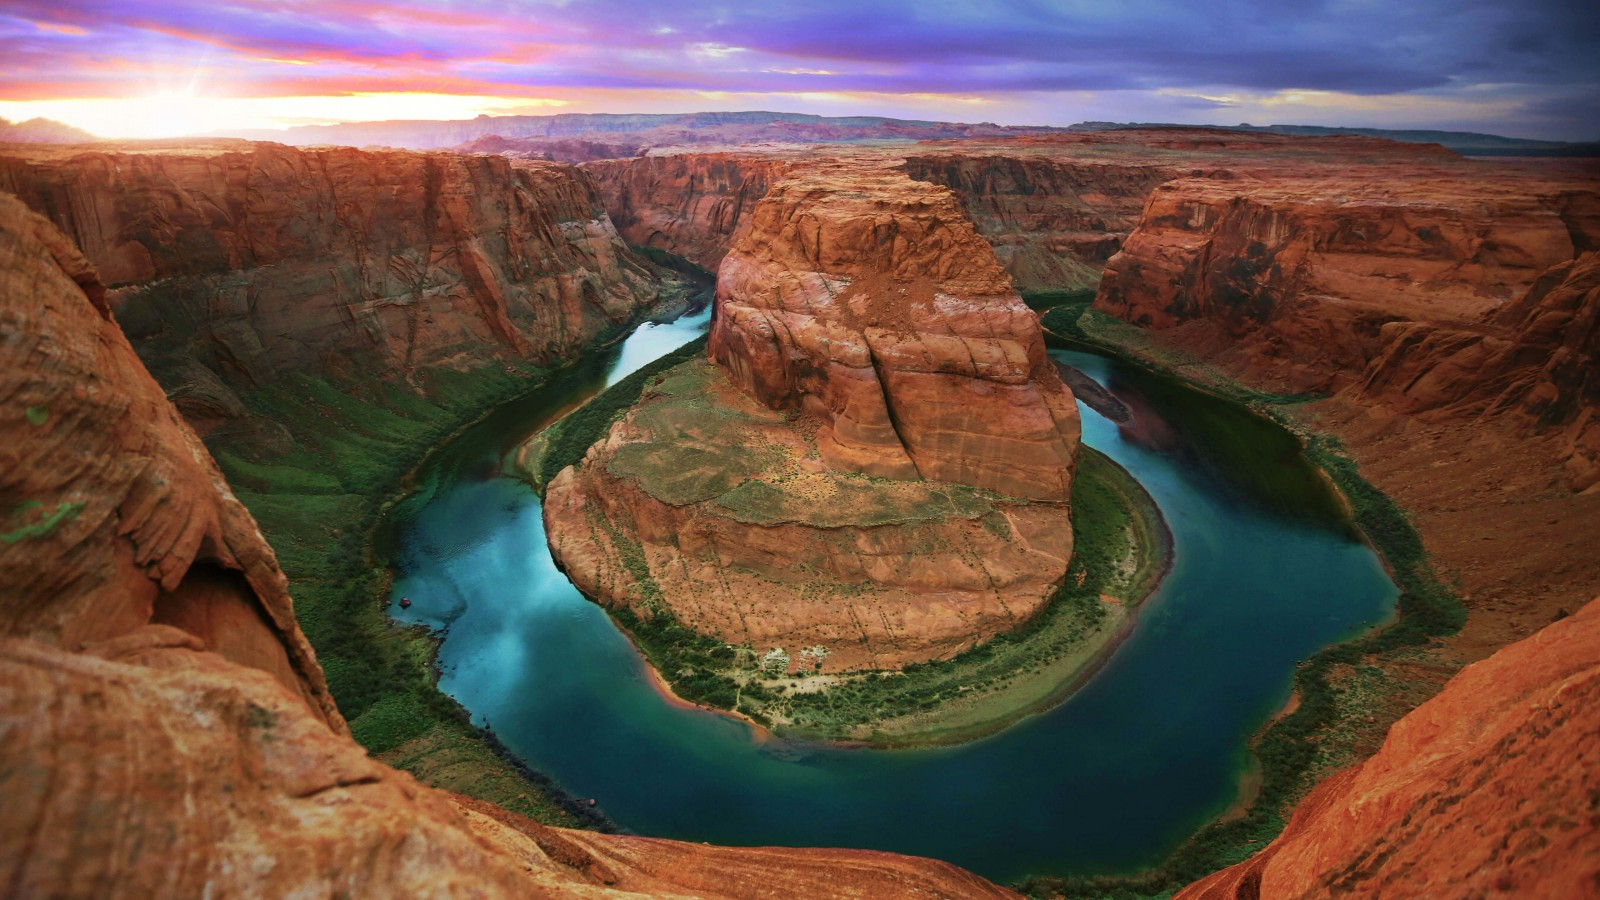 Horseshoe Bend Wallpaper for Desktop 1600x900